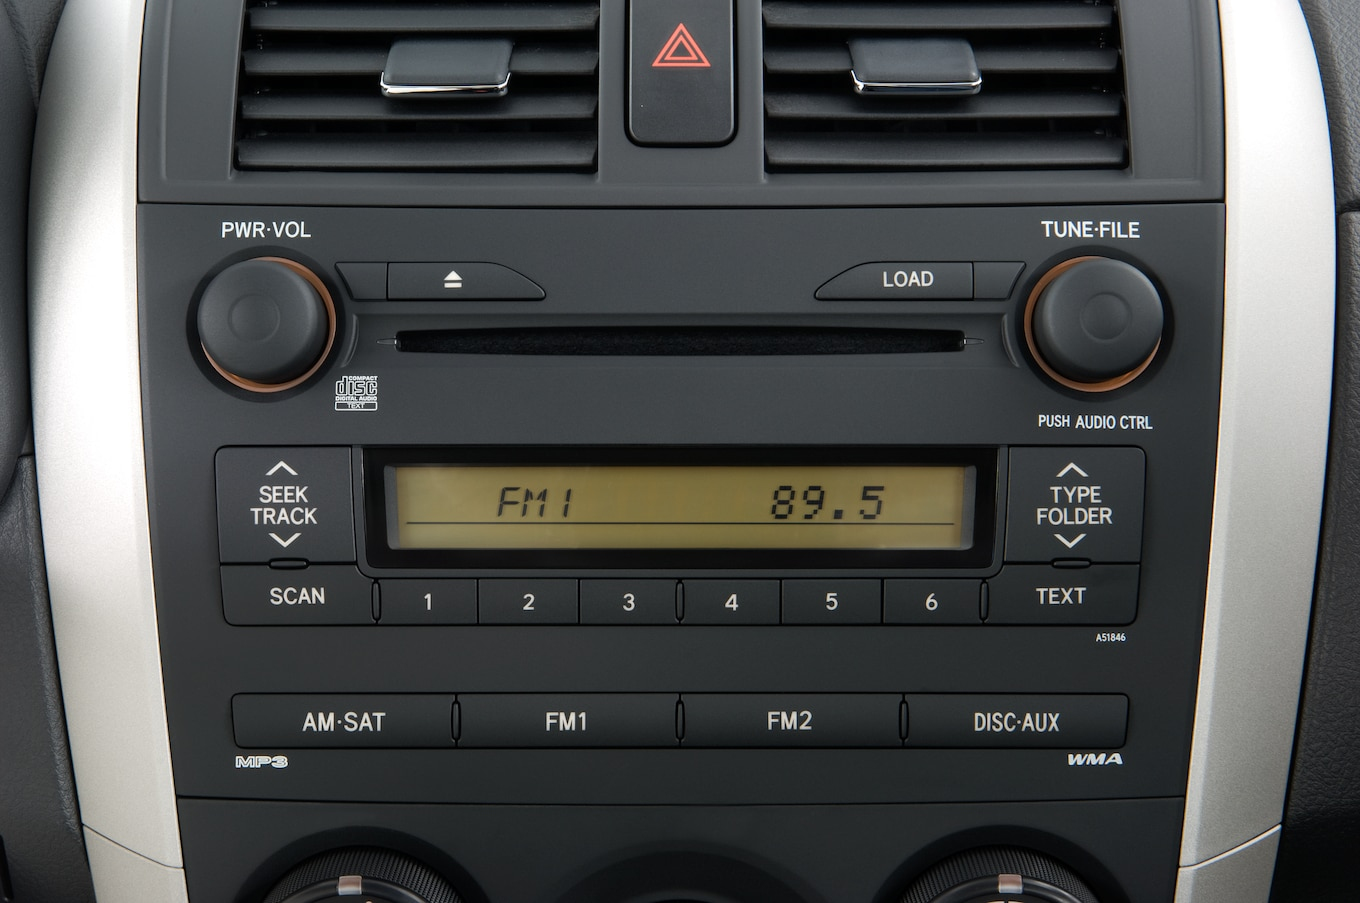 Stereo Wiring Diagram For 1990 Toyota Corolla